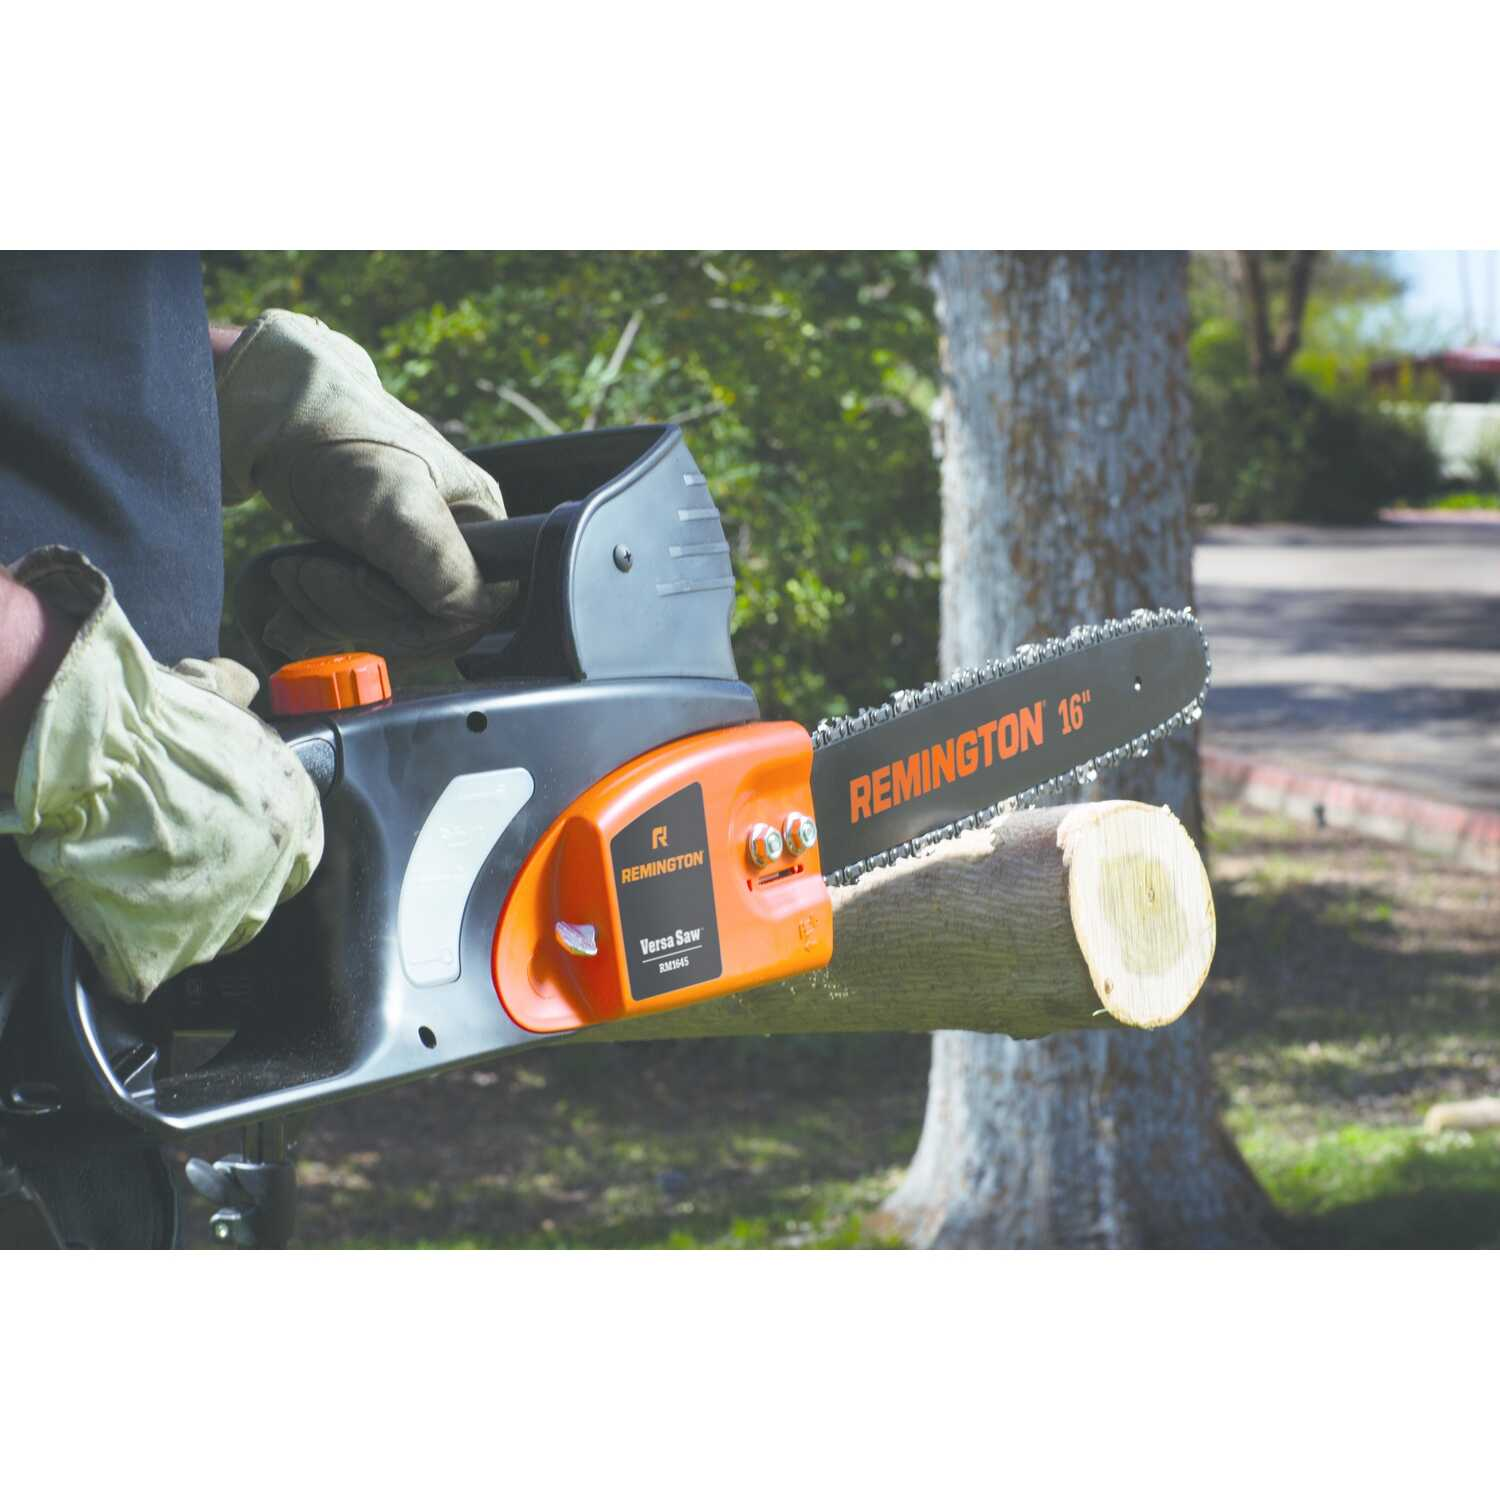 Remington Versa Saw 16 in  L Electric Chainsaw RM1645 - Ace